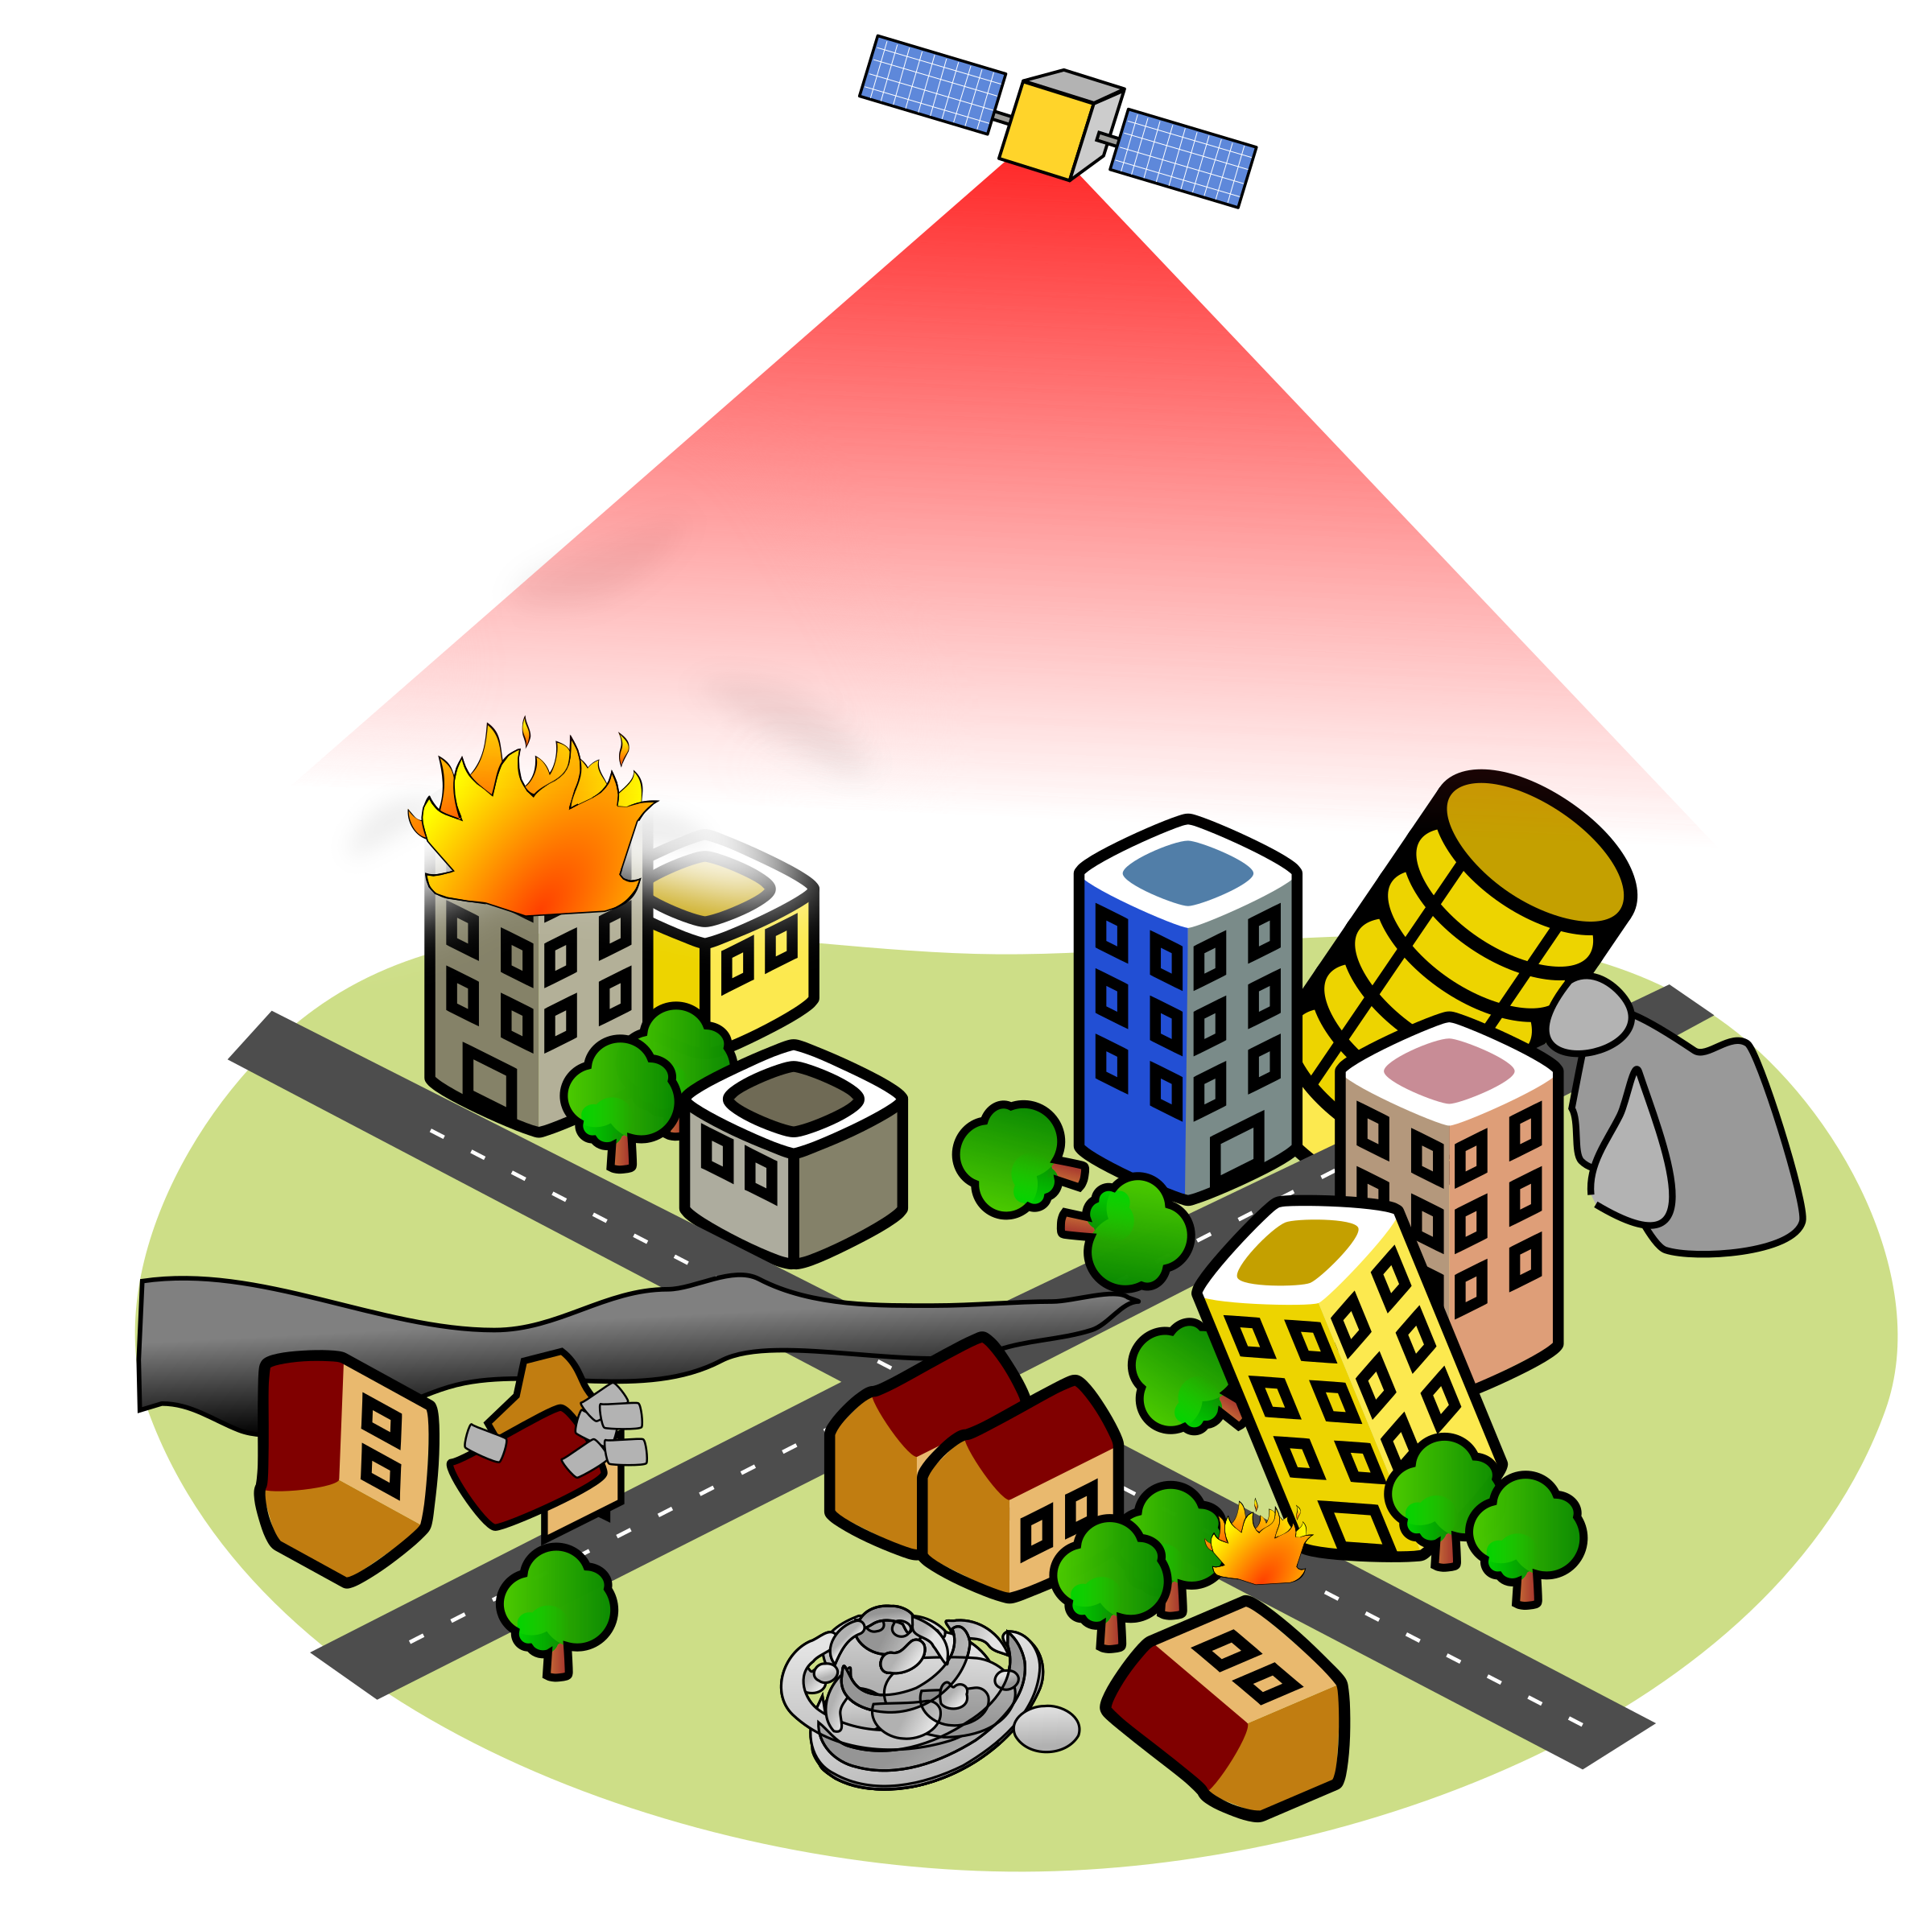 Disaster remote sensing icons. Earthquake clipart earhquake